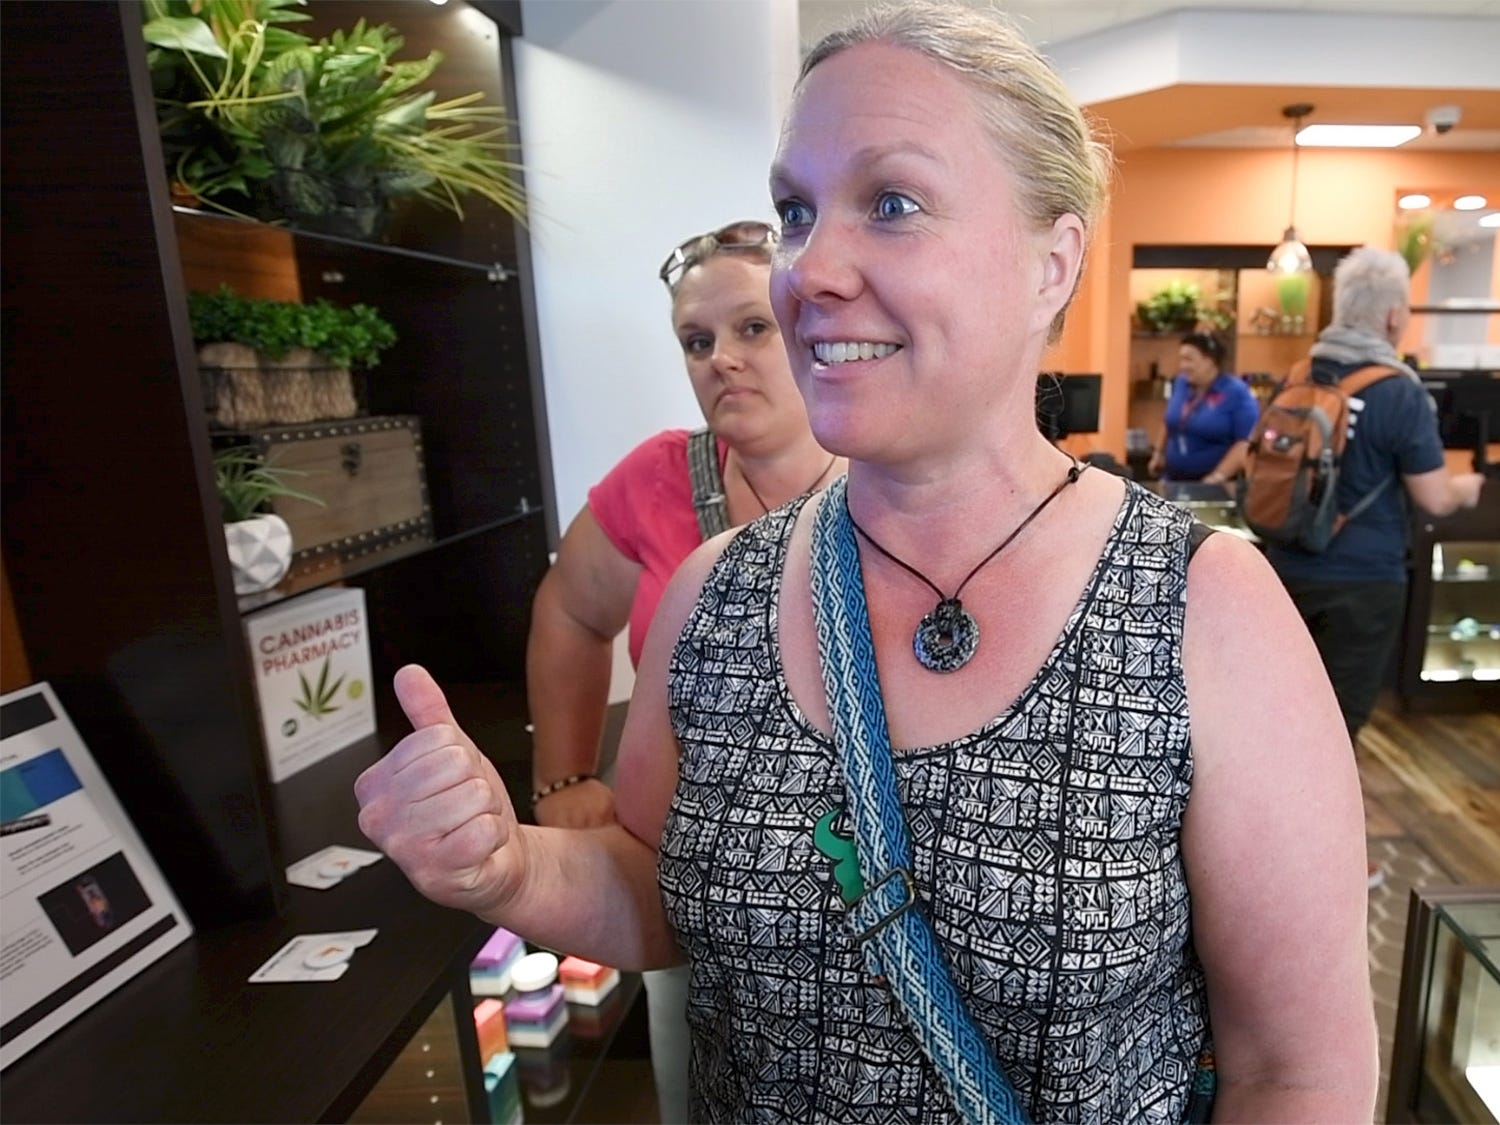 Holly Blyler, of Spring Grove, is excited during an open house for the Rise medical marijuana dispensary in West Manchester Township Tuesday October 2, 2018.